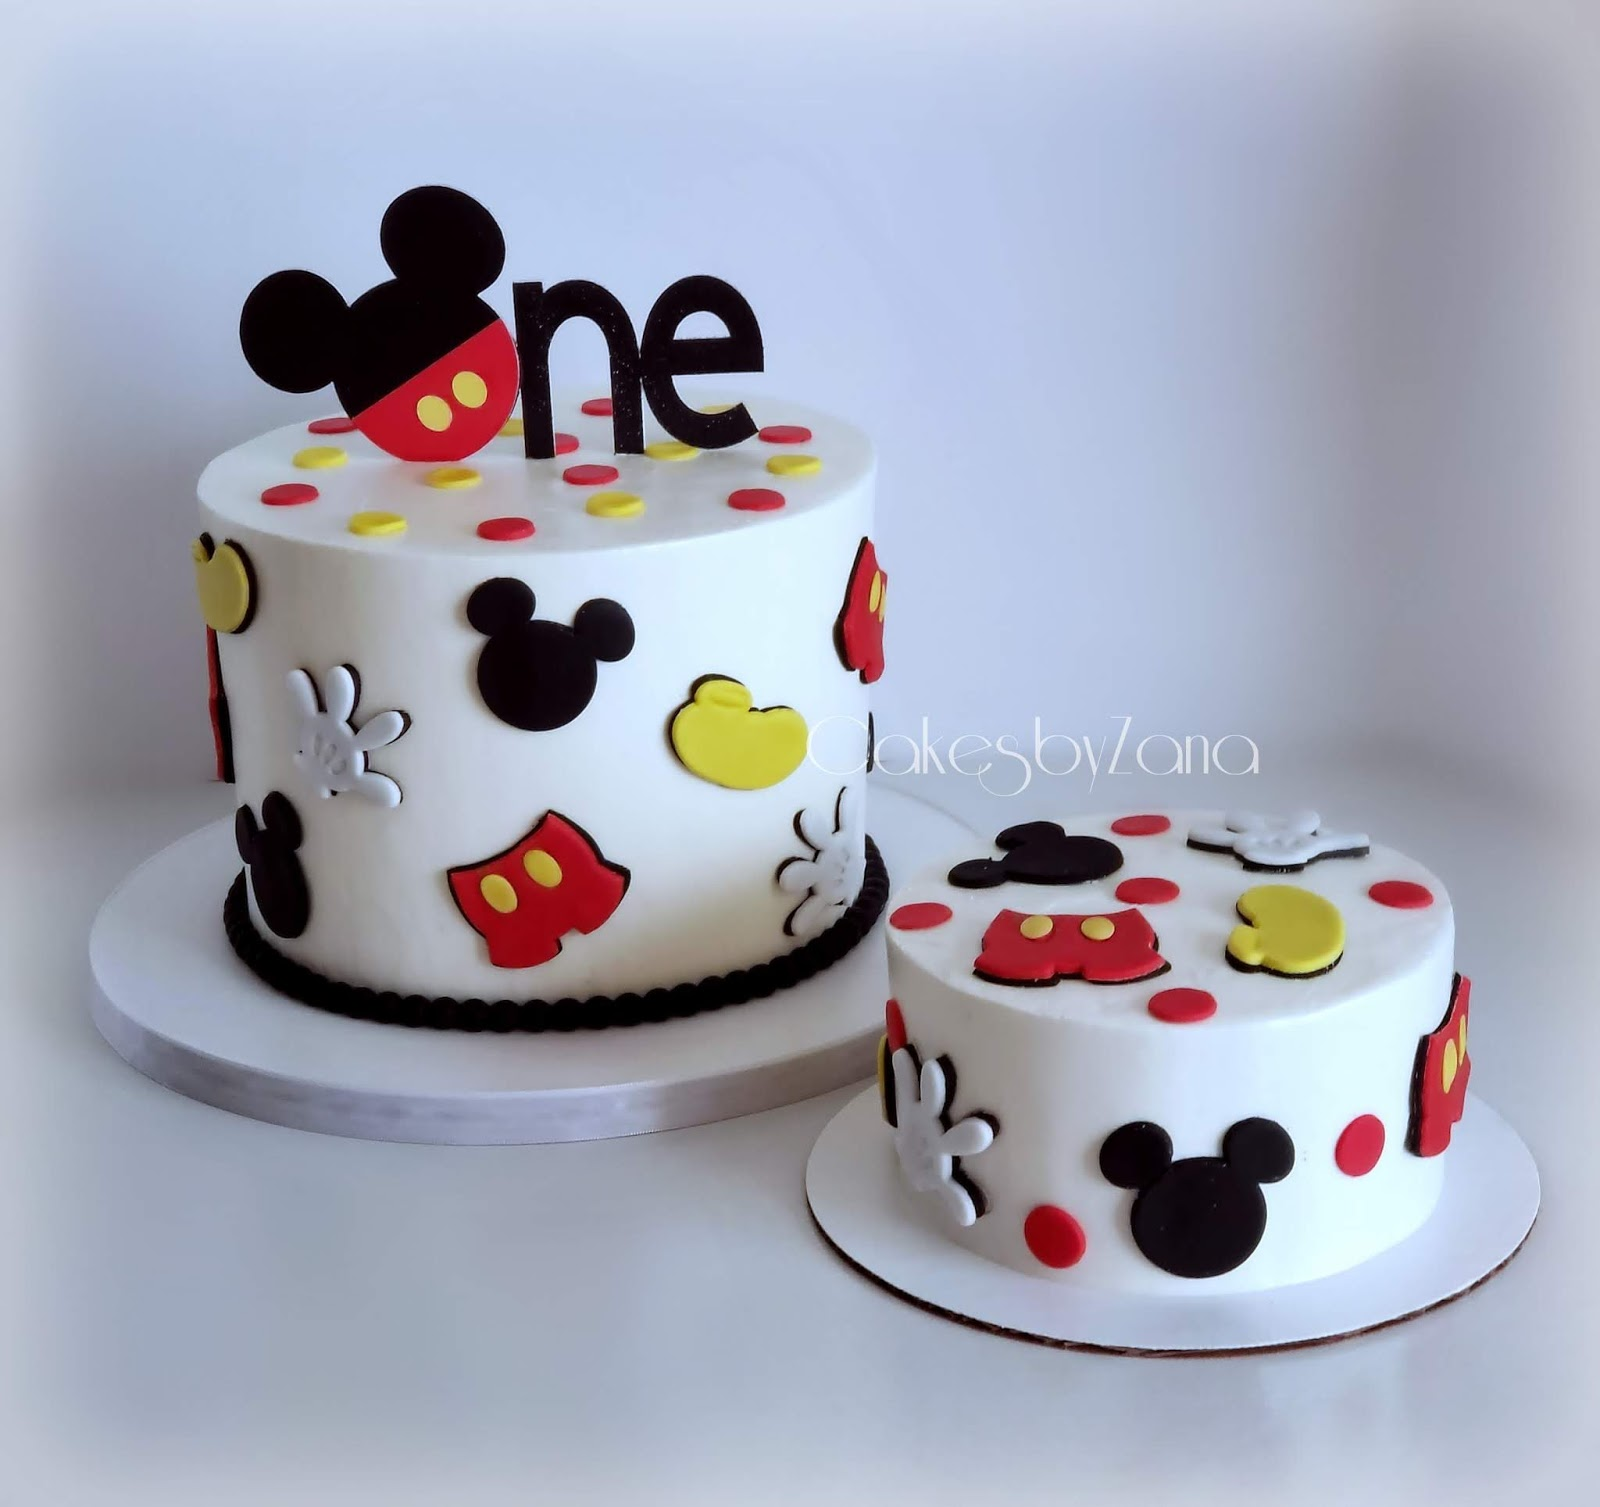 Surprising Cakesbyzana Mickey Mouse 1St Birthday Cake Personalised Birthday Cards Veneteletsinfo